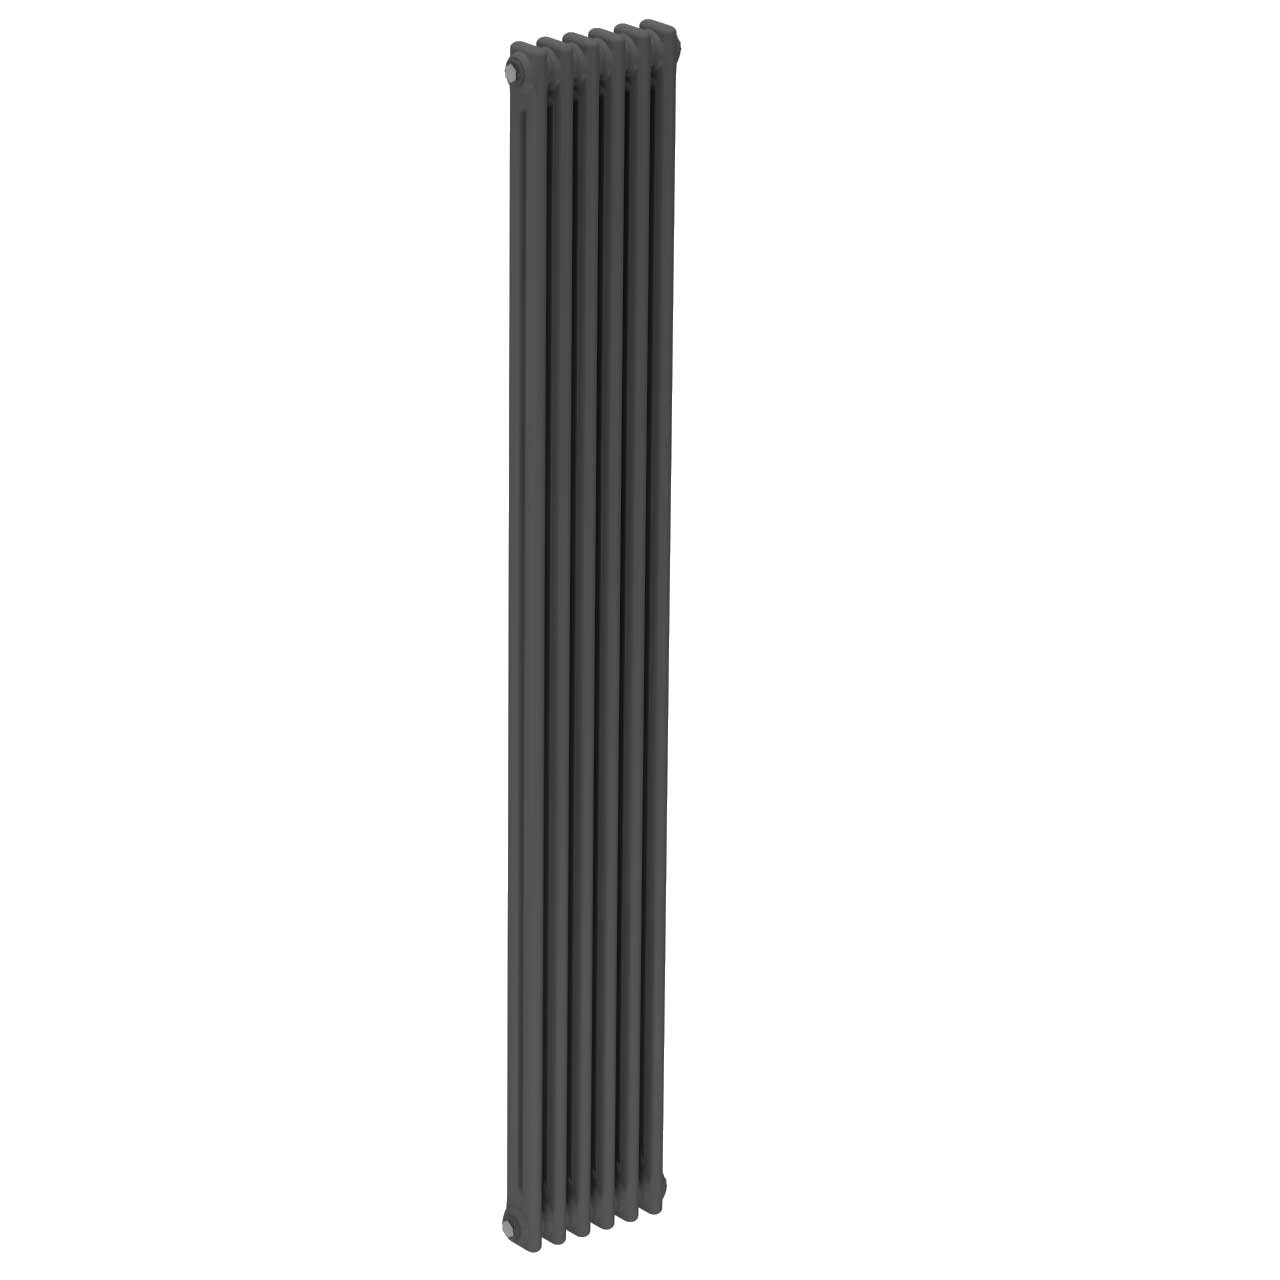 Colosseum Anthracite 1800mm x 284mm Vertical Double Panel Radiator